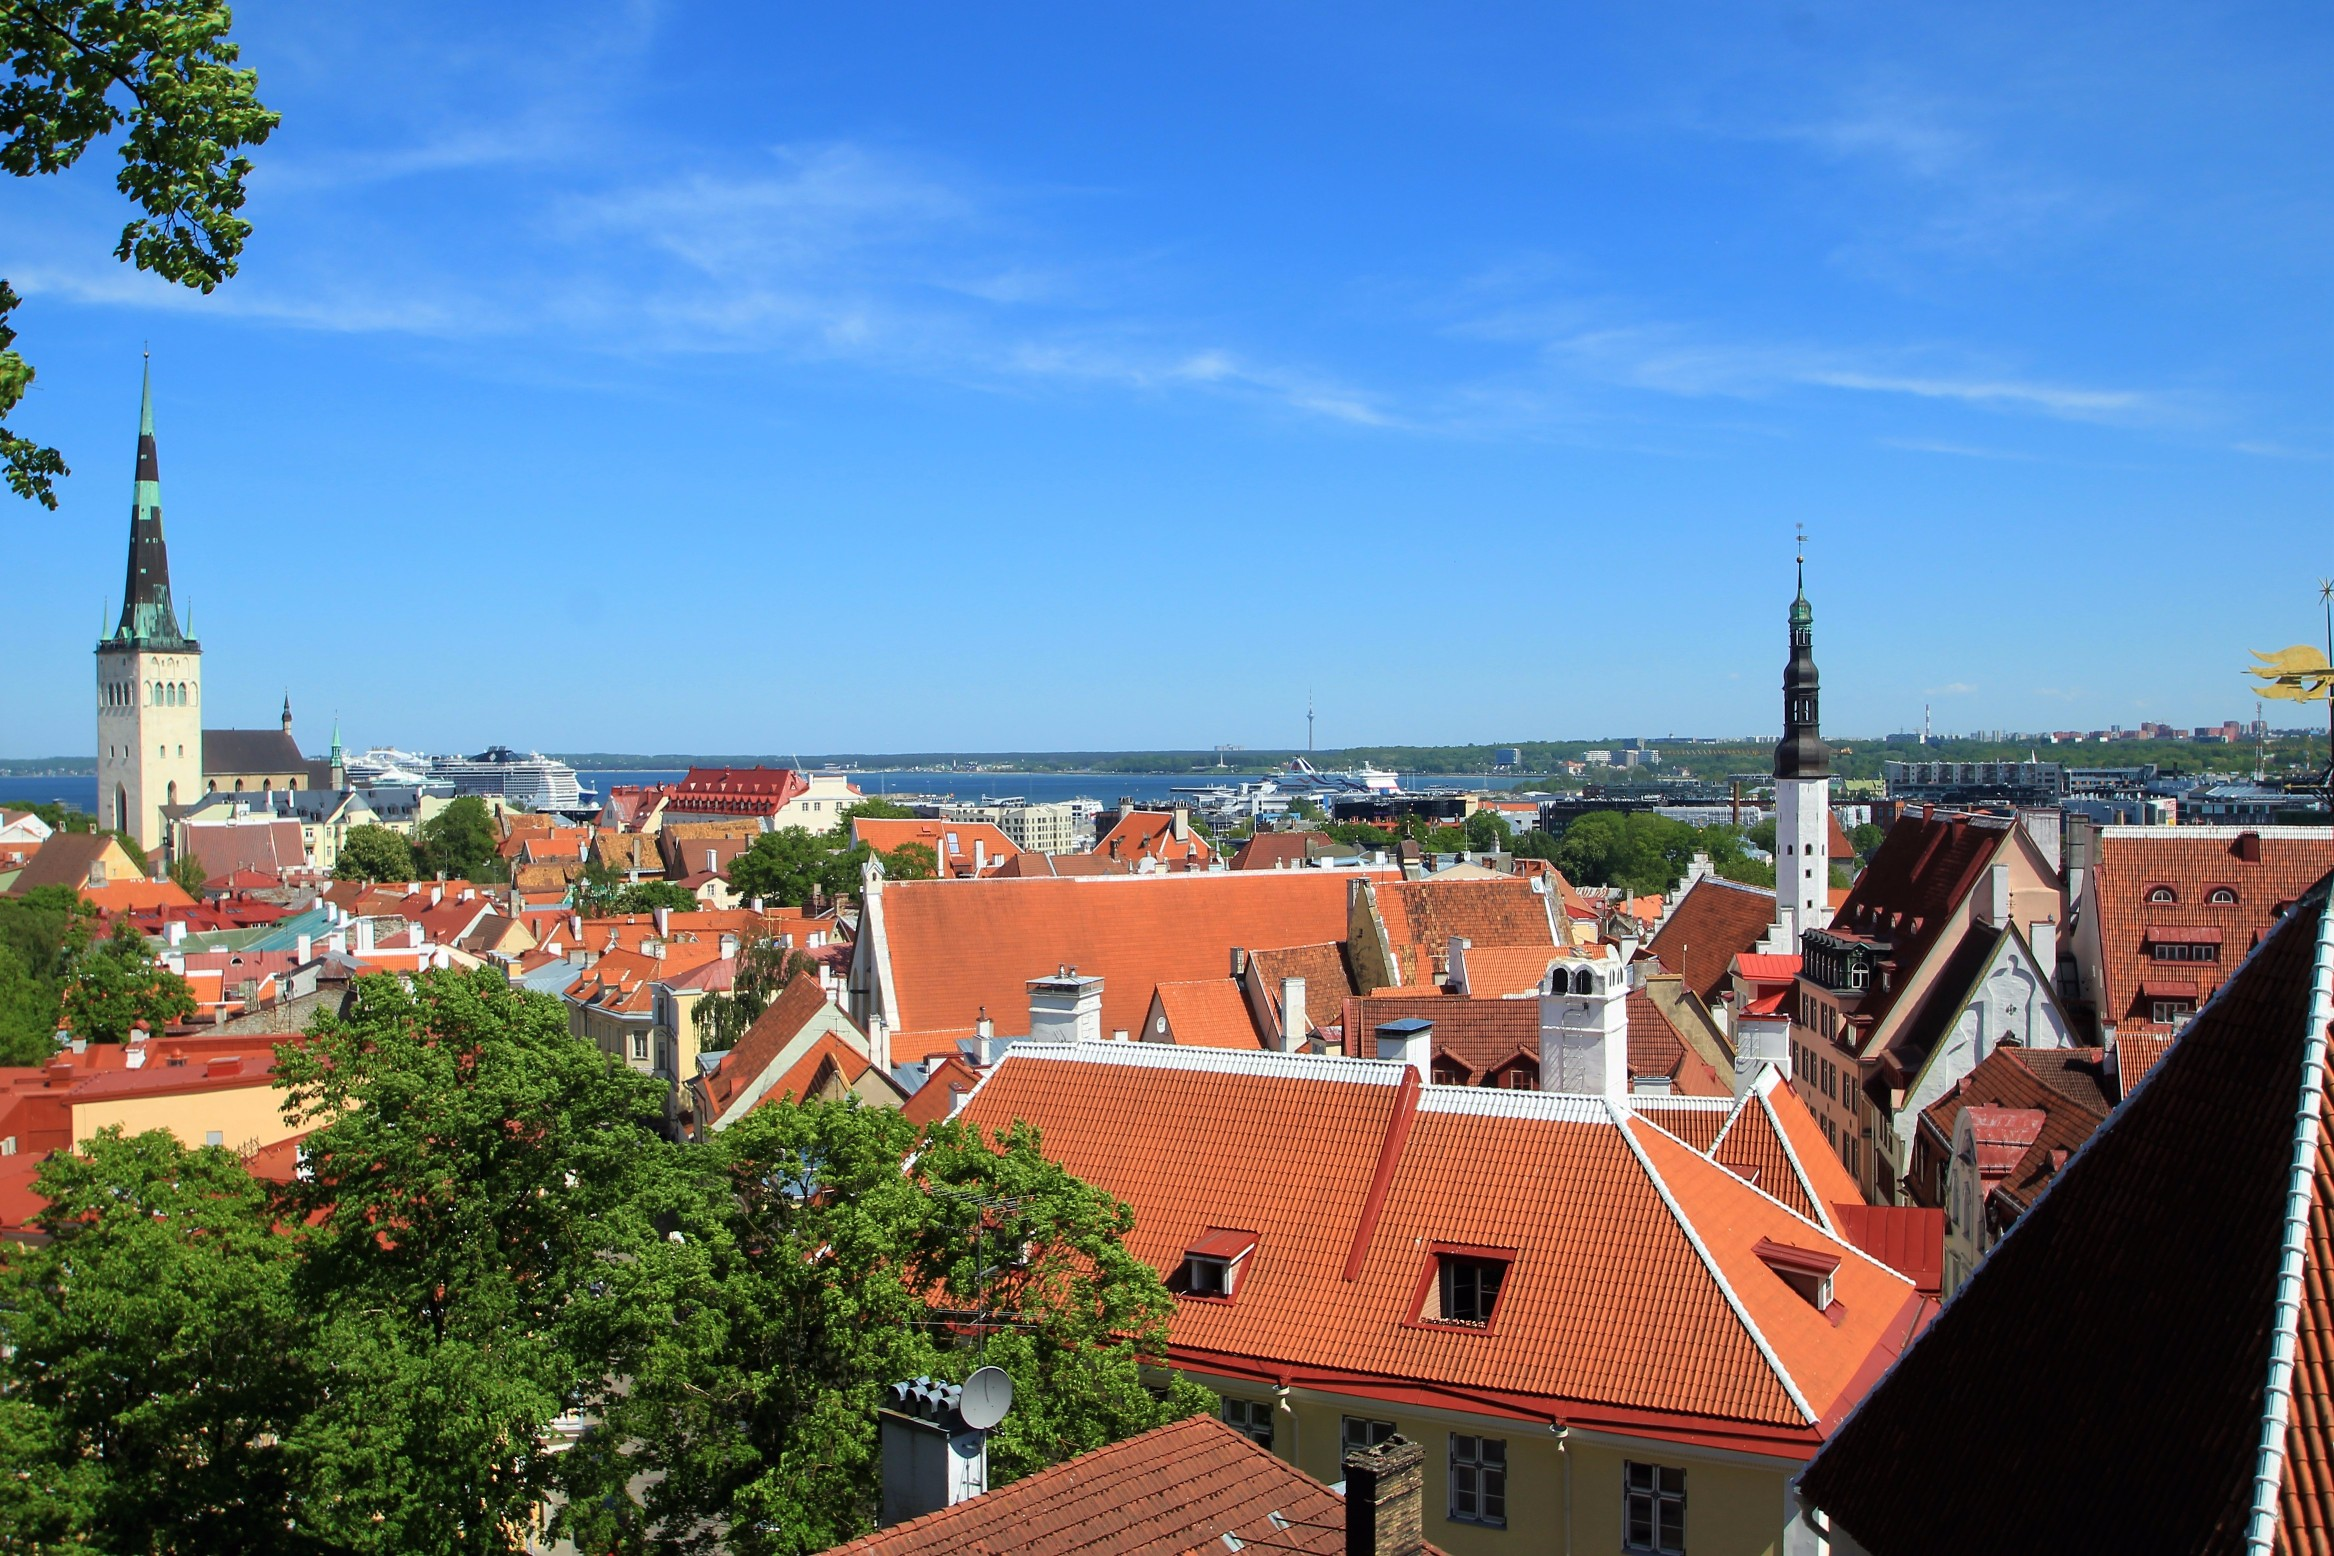 View of Old Town & St. Olafs